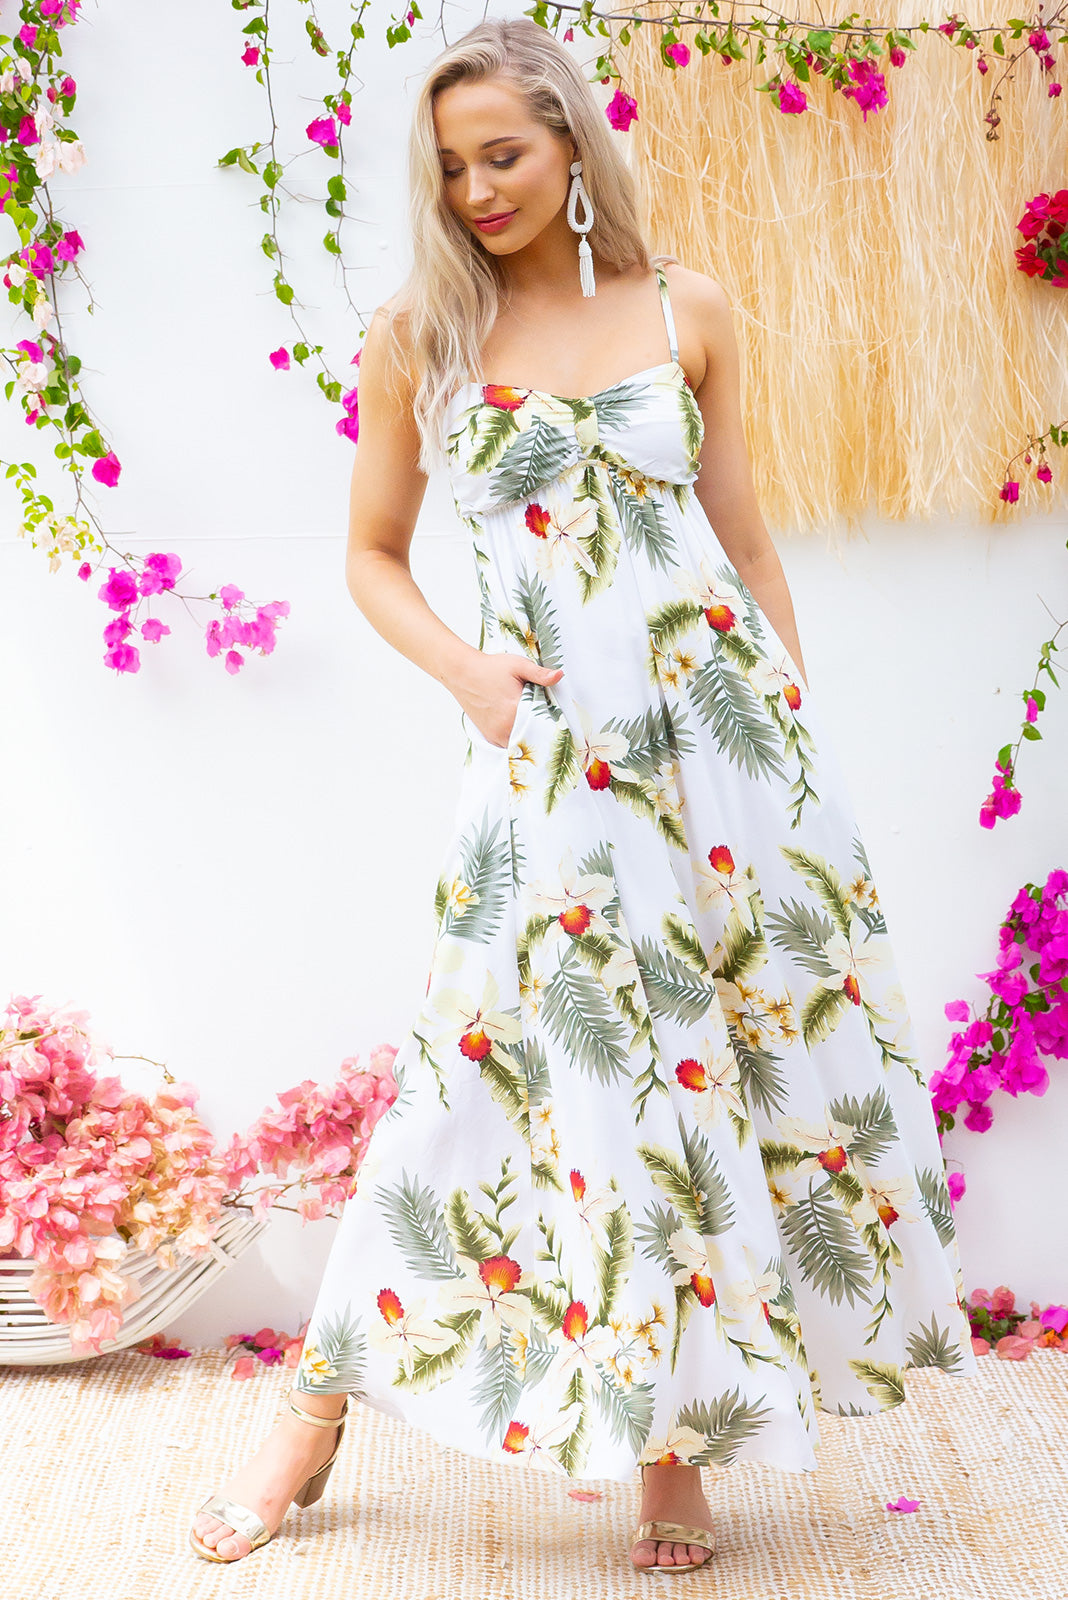 Emmy Aloha Pearl Maxi Dress features a flattering empire line with thin shoulder straps and side pockets in a classic light cream and tropical print on woven 100% rayon